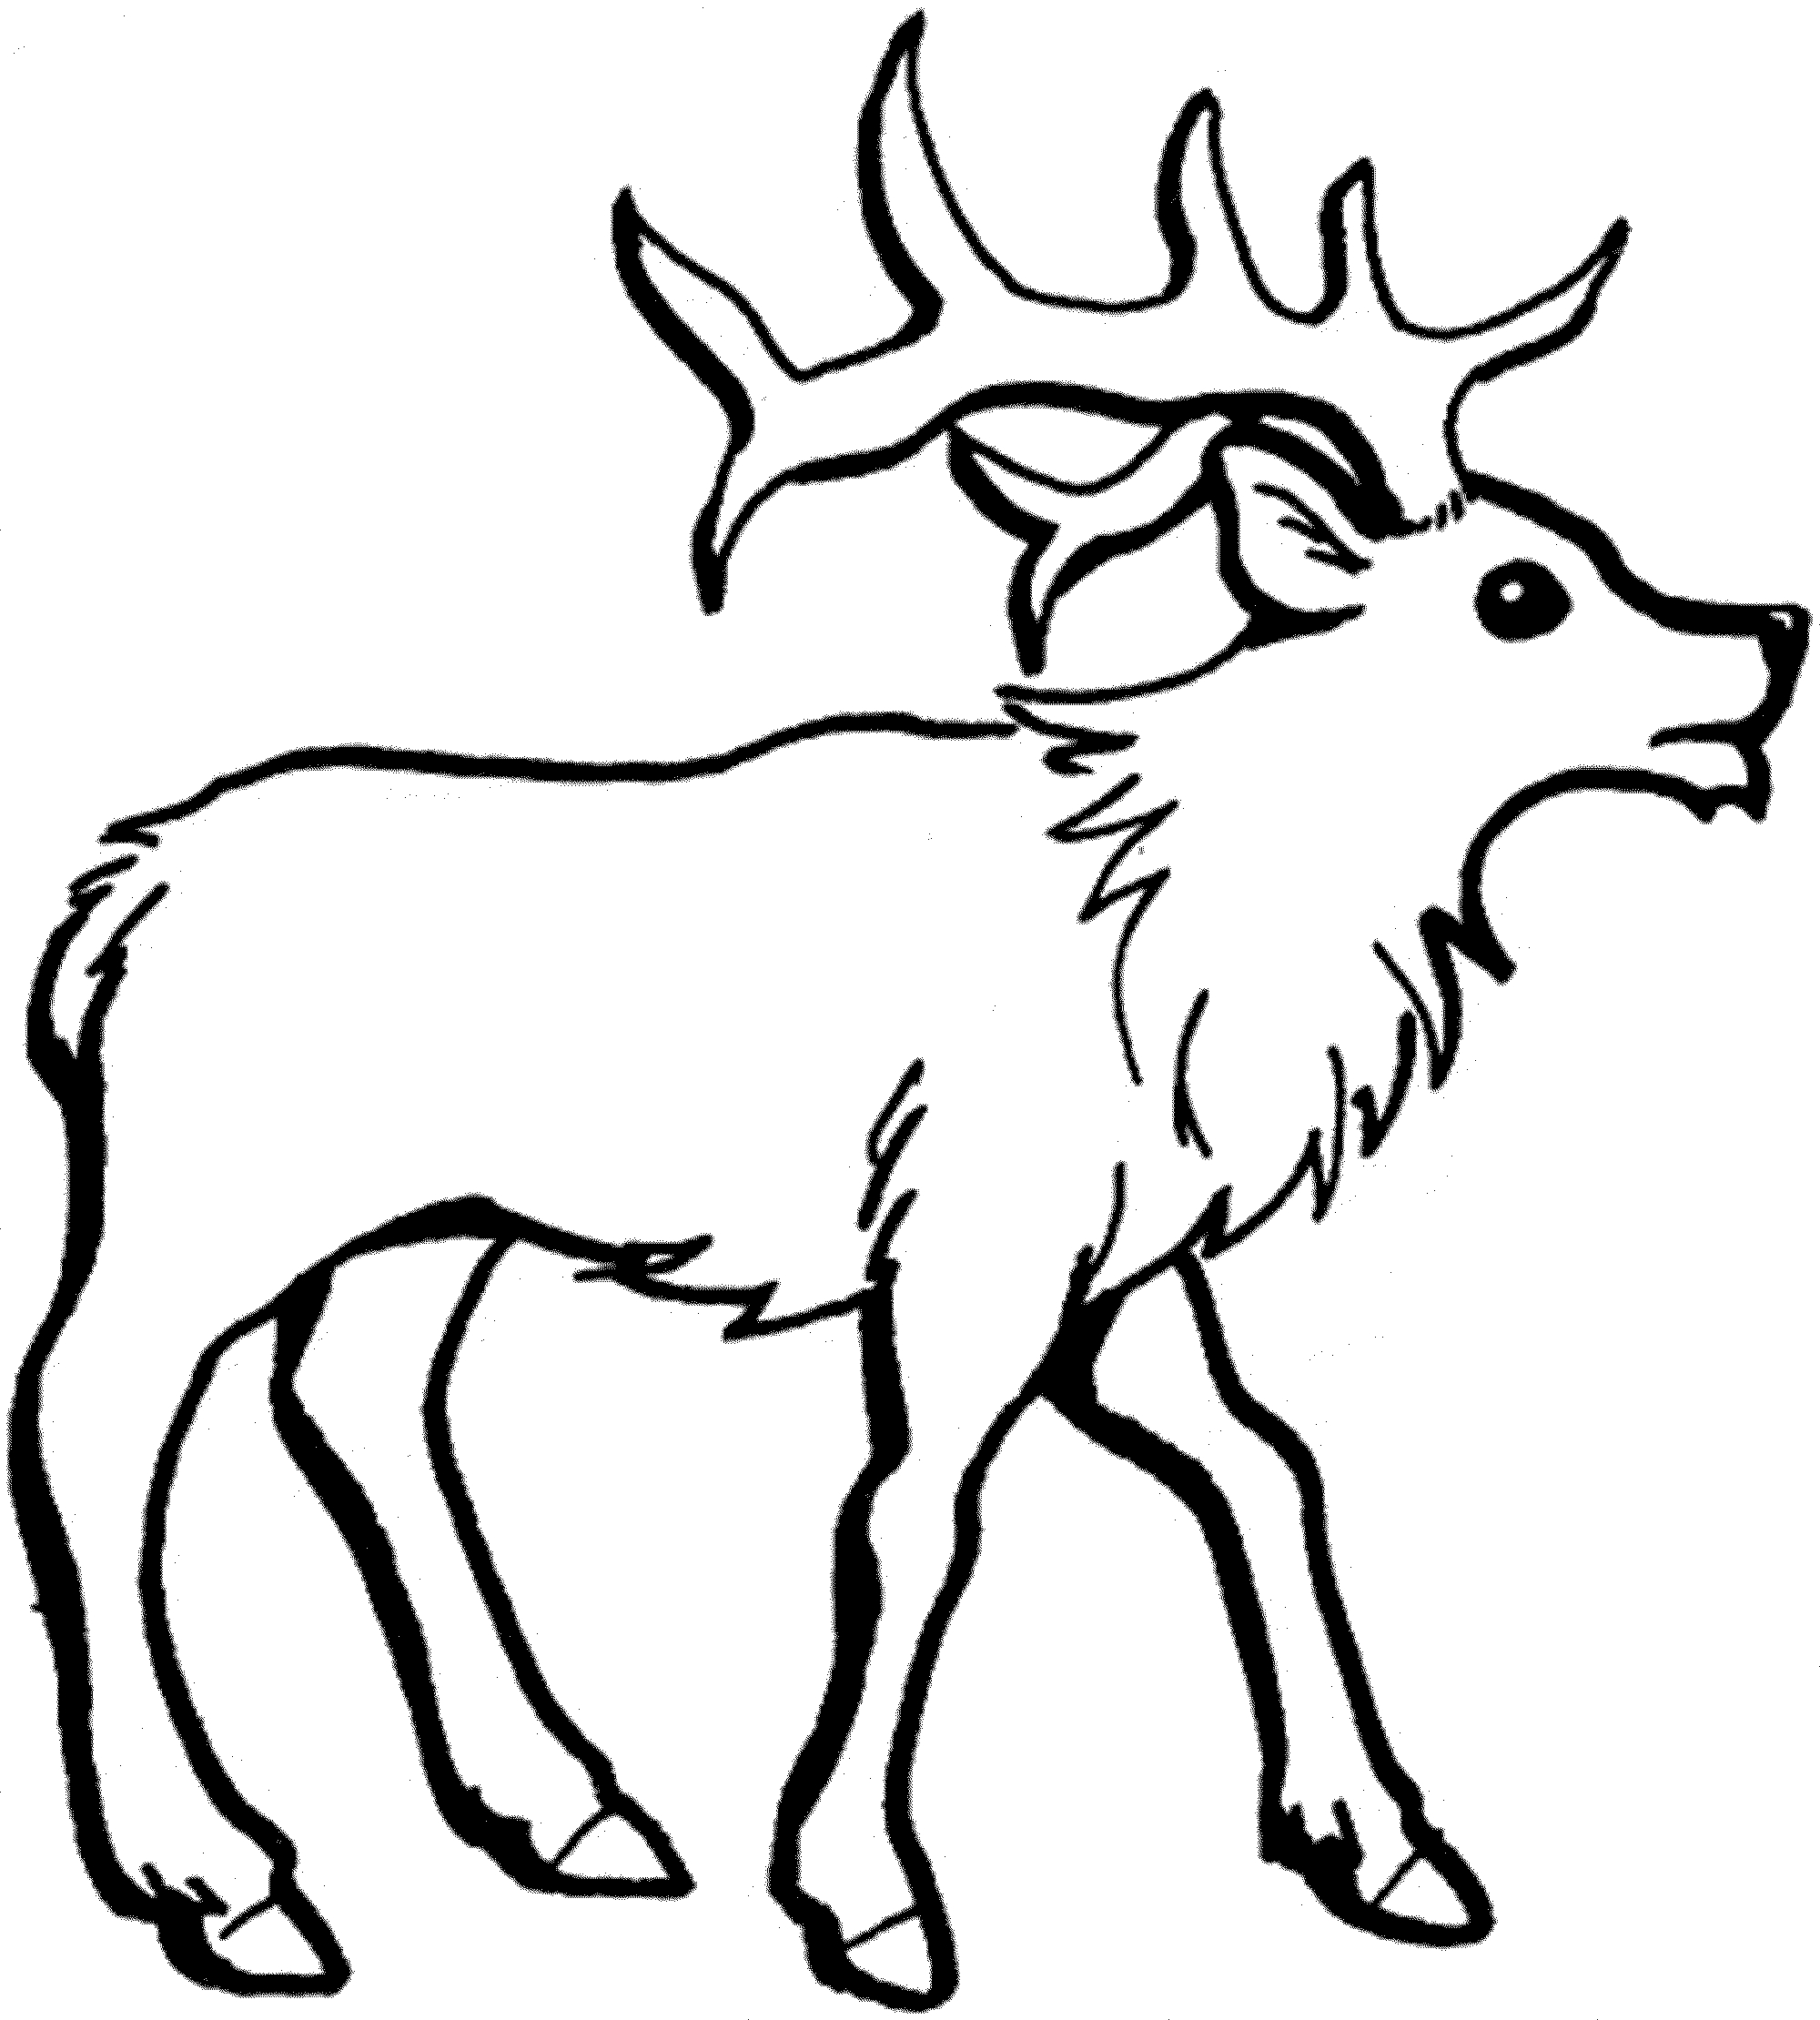 2000x2220 Unique Deer Page To Color Collection Printable Coloring Sheet